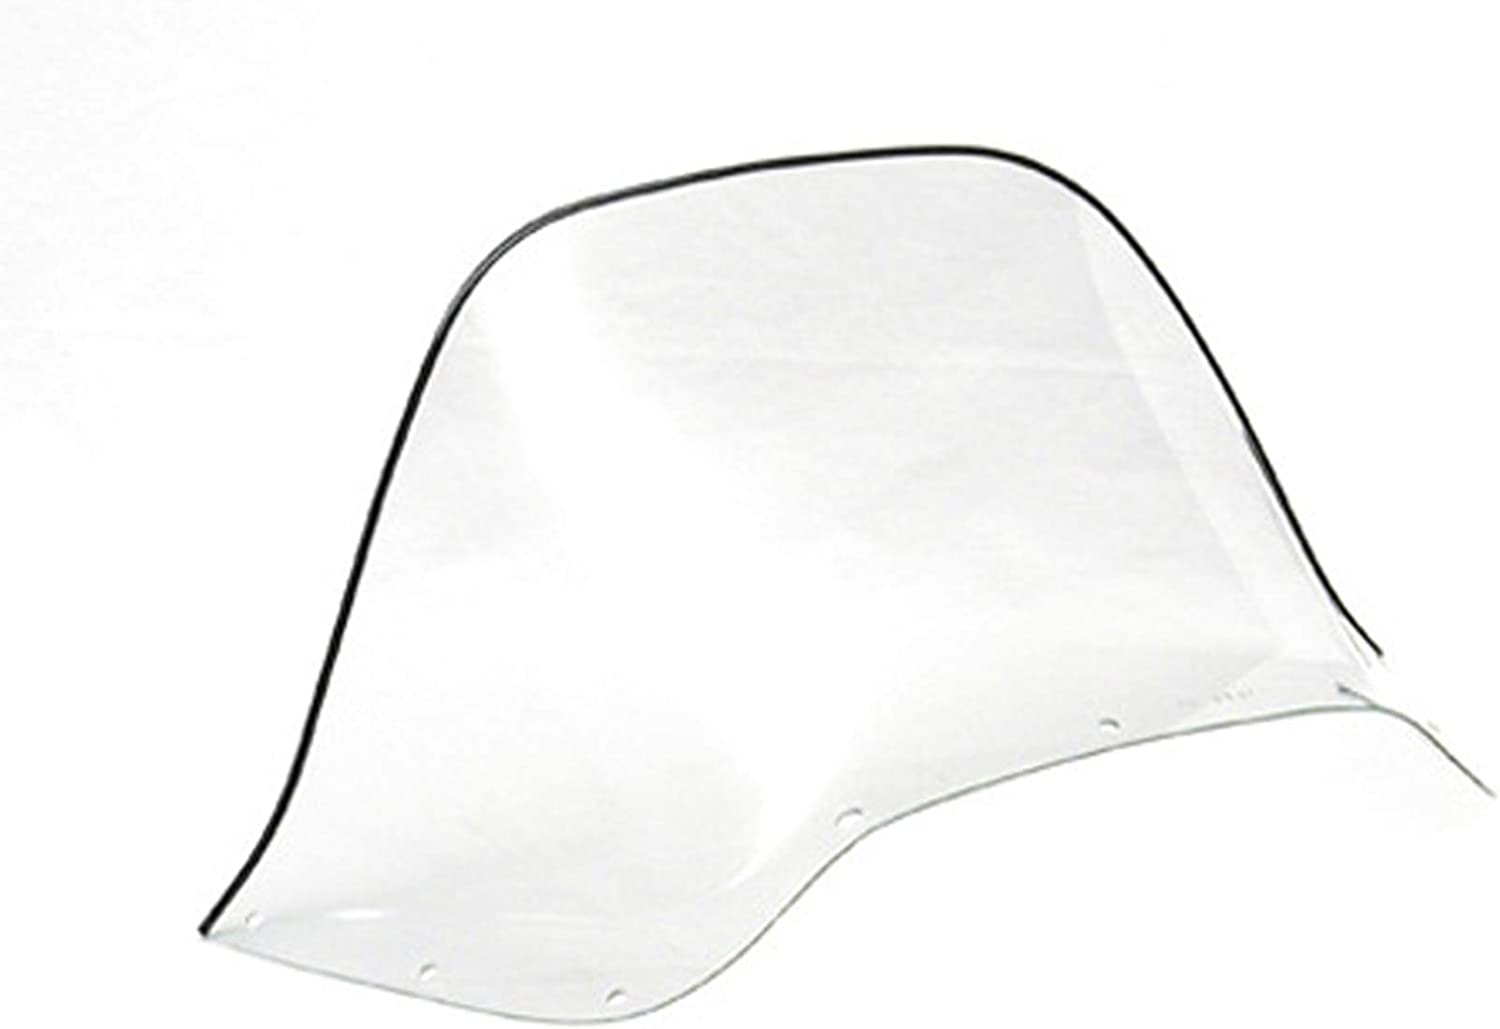 High 12.5in Windshield - Smoke For 1997 Ski-Doo Formula Deluxe 500 Snowmobile